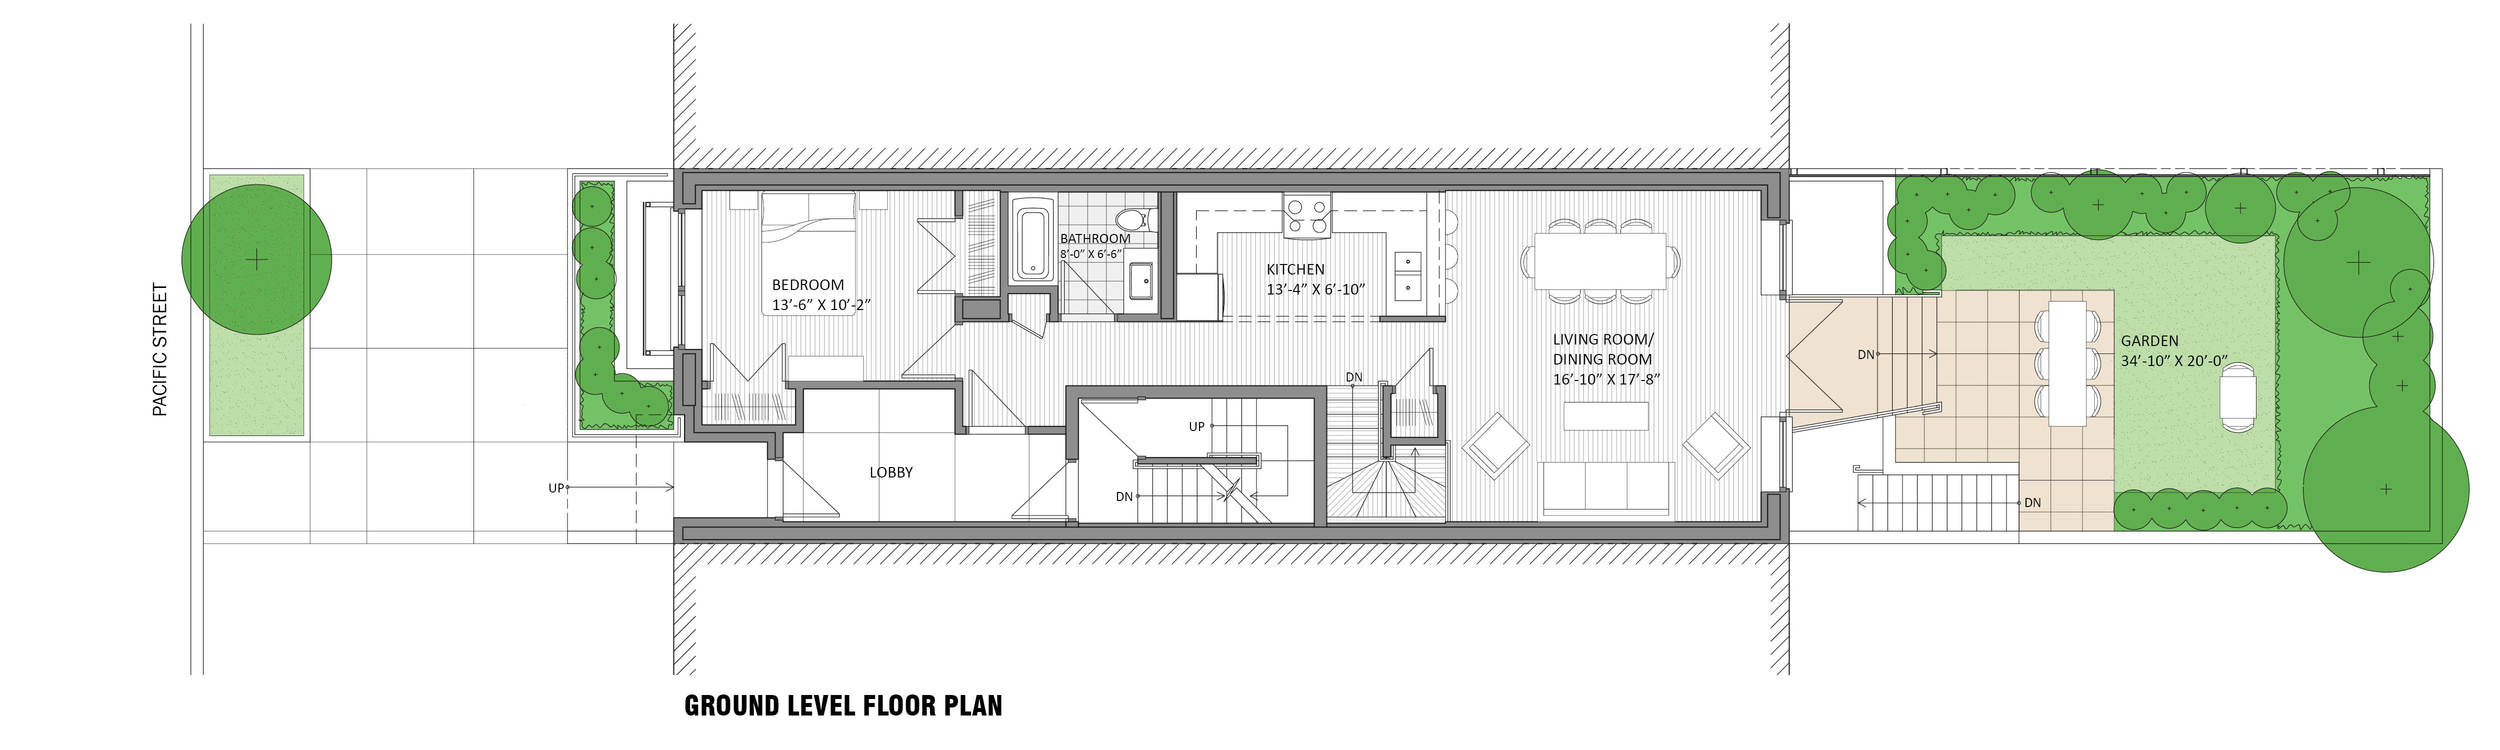 Floor Plan cropped_Website.jpg